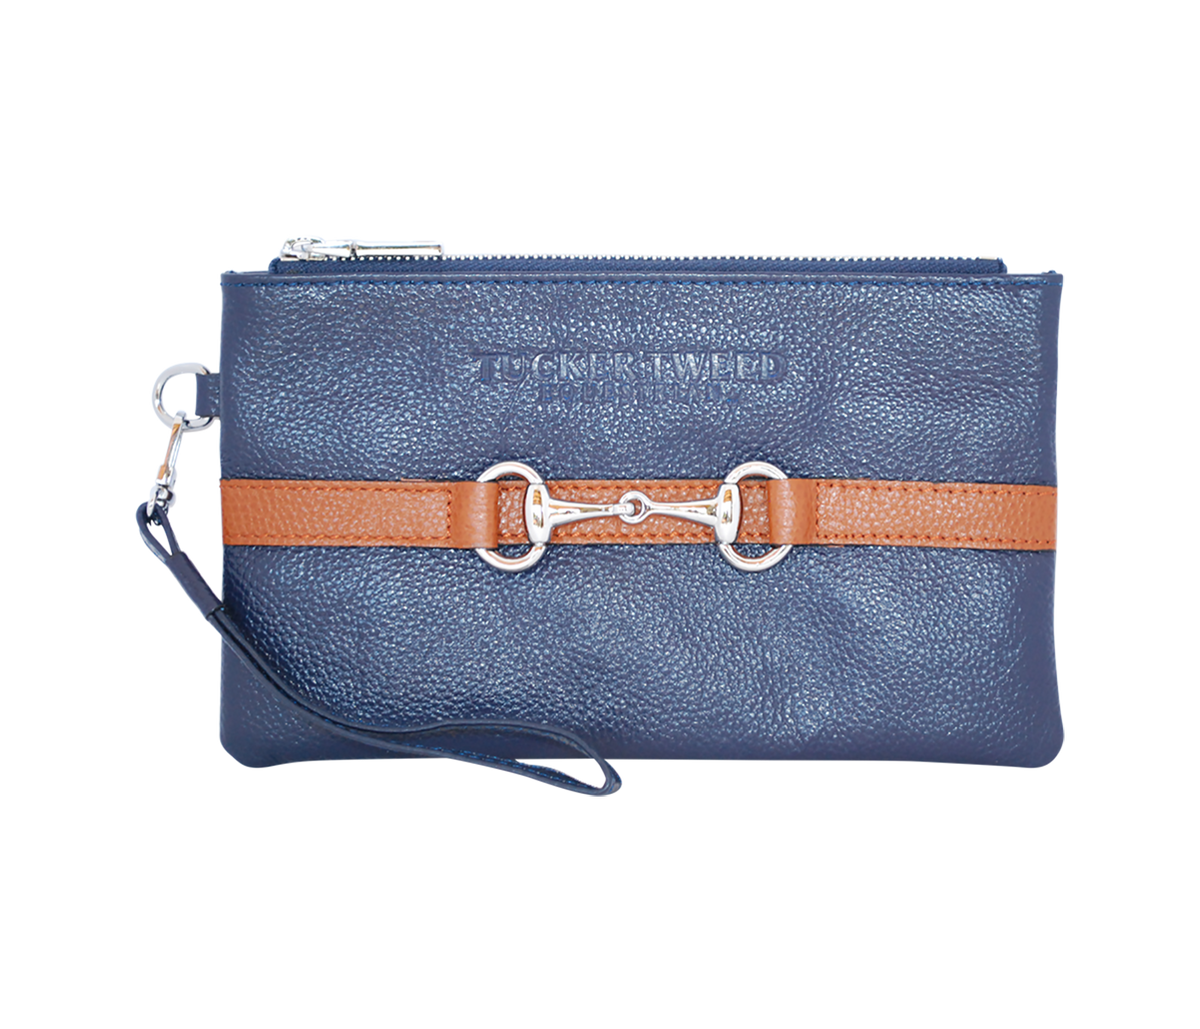 Tucker Tweed Leather Handbags Navy/Chestnut The Wellington Wristlet